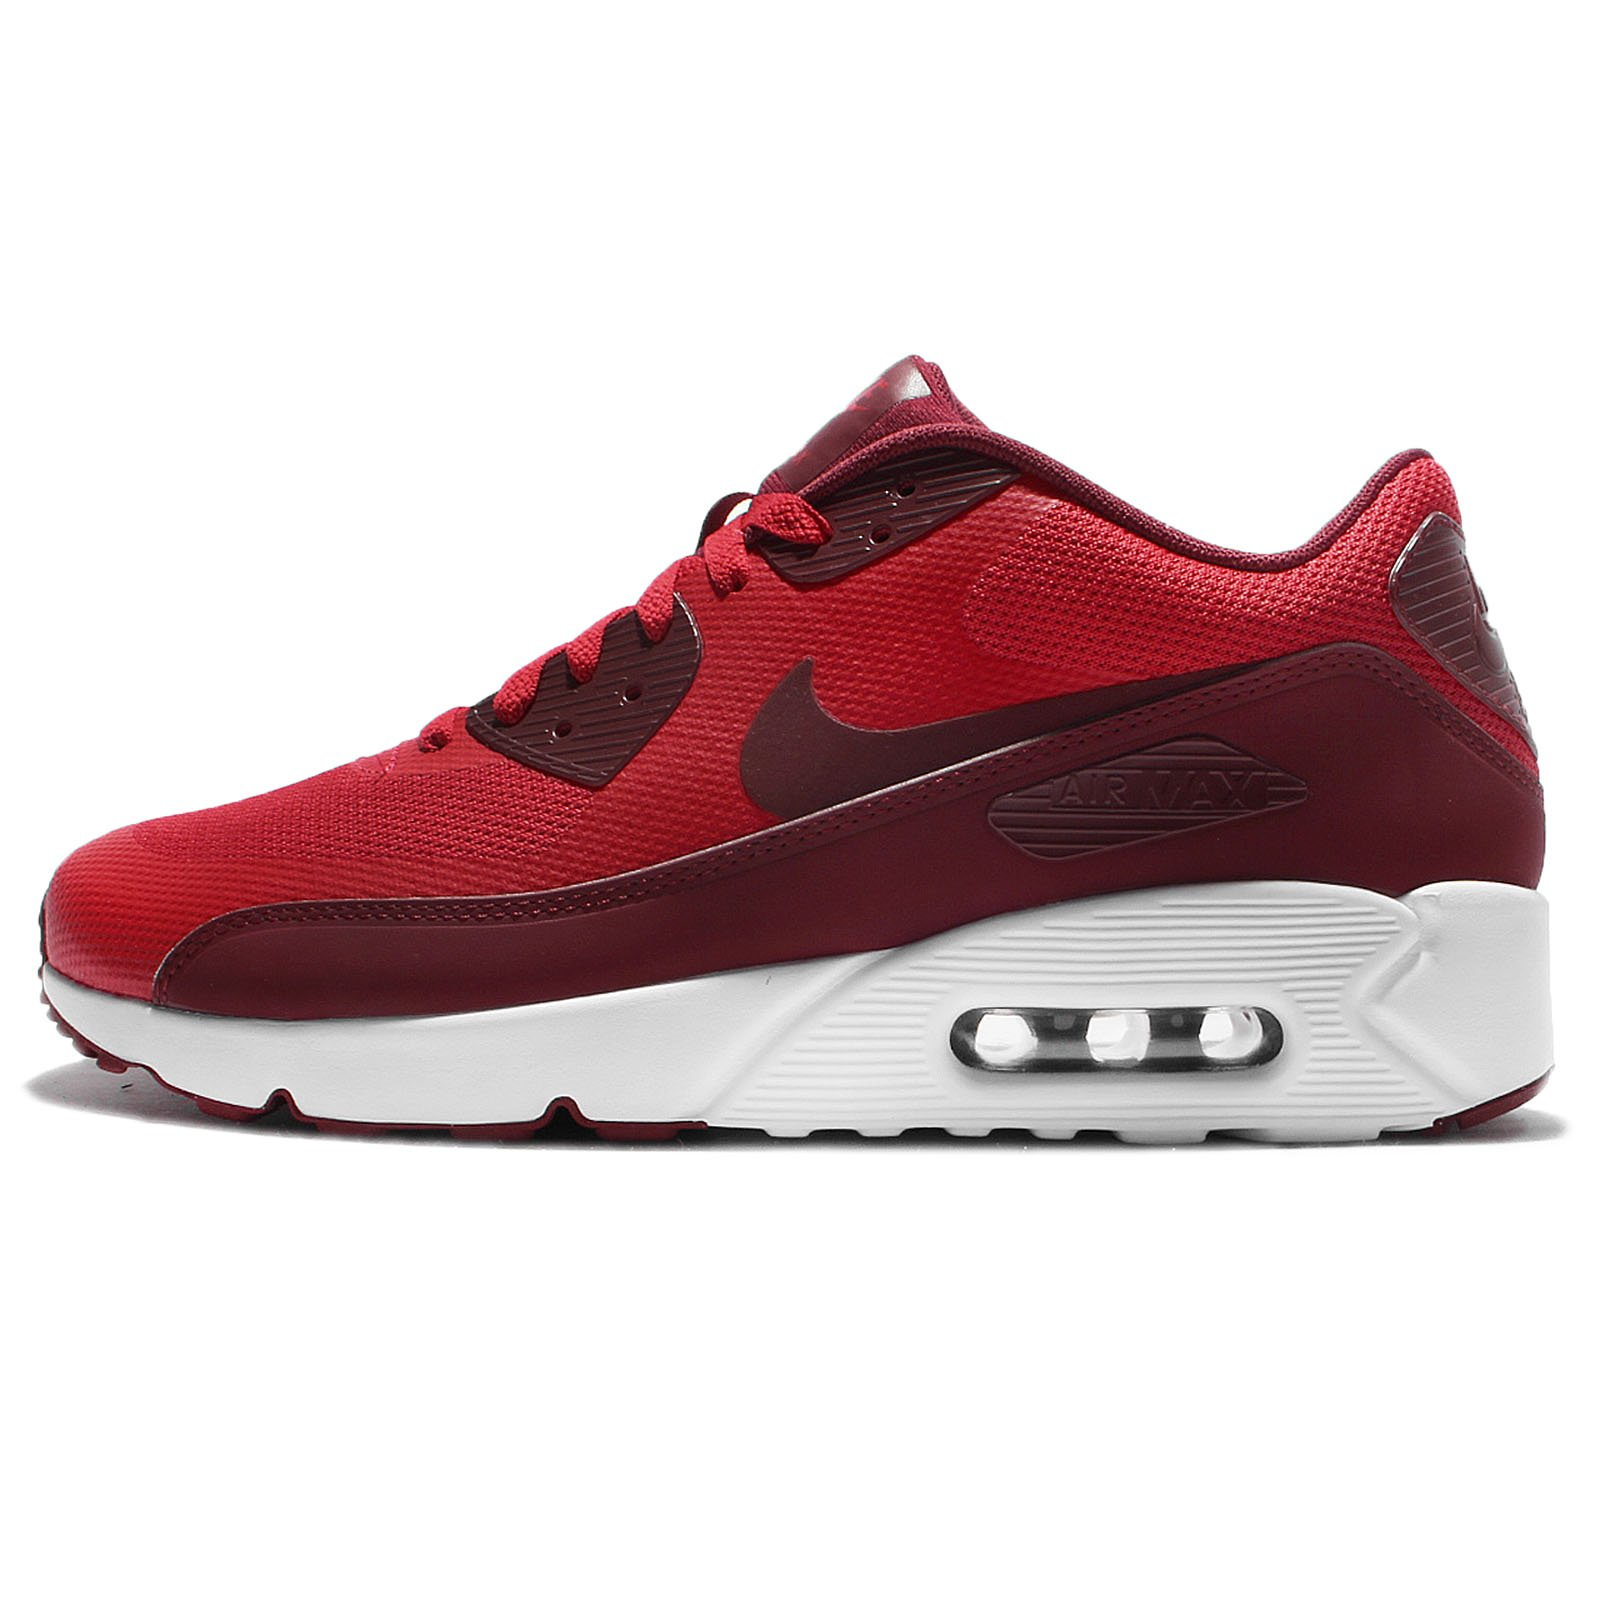 premium selection 64d55 34ca2 NIKE Men's Air Max 90 Ultra 2.0 Essential University Red/Team Red/White  Running Shoe 10.5 Men US